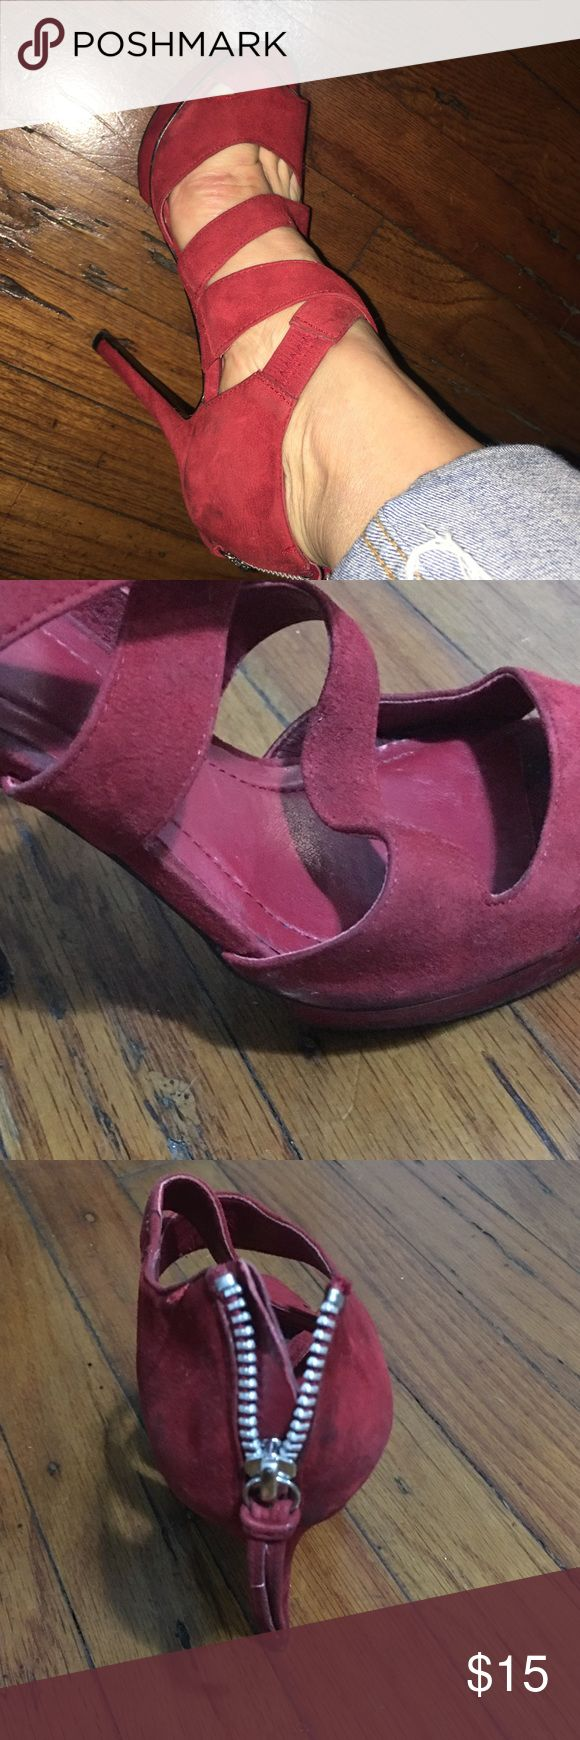 BCBG Red High Hells, size 35.5 BGBG red high heels, size 5.5 , excellent conditions BCBG Shoes Heels